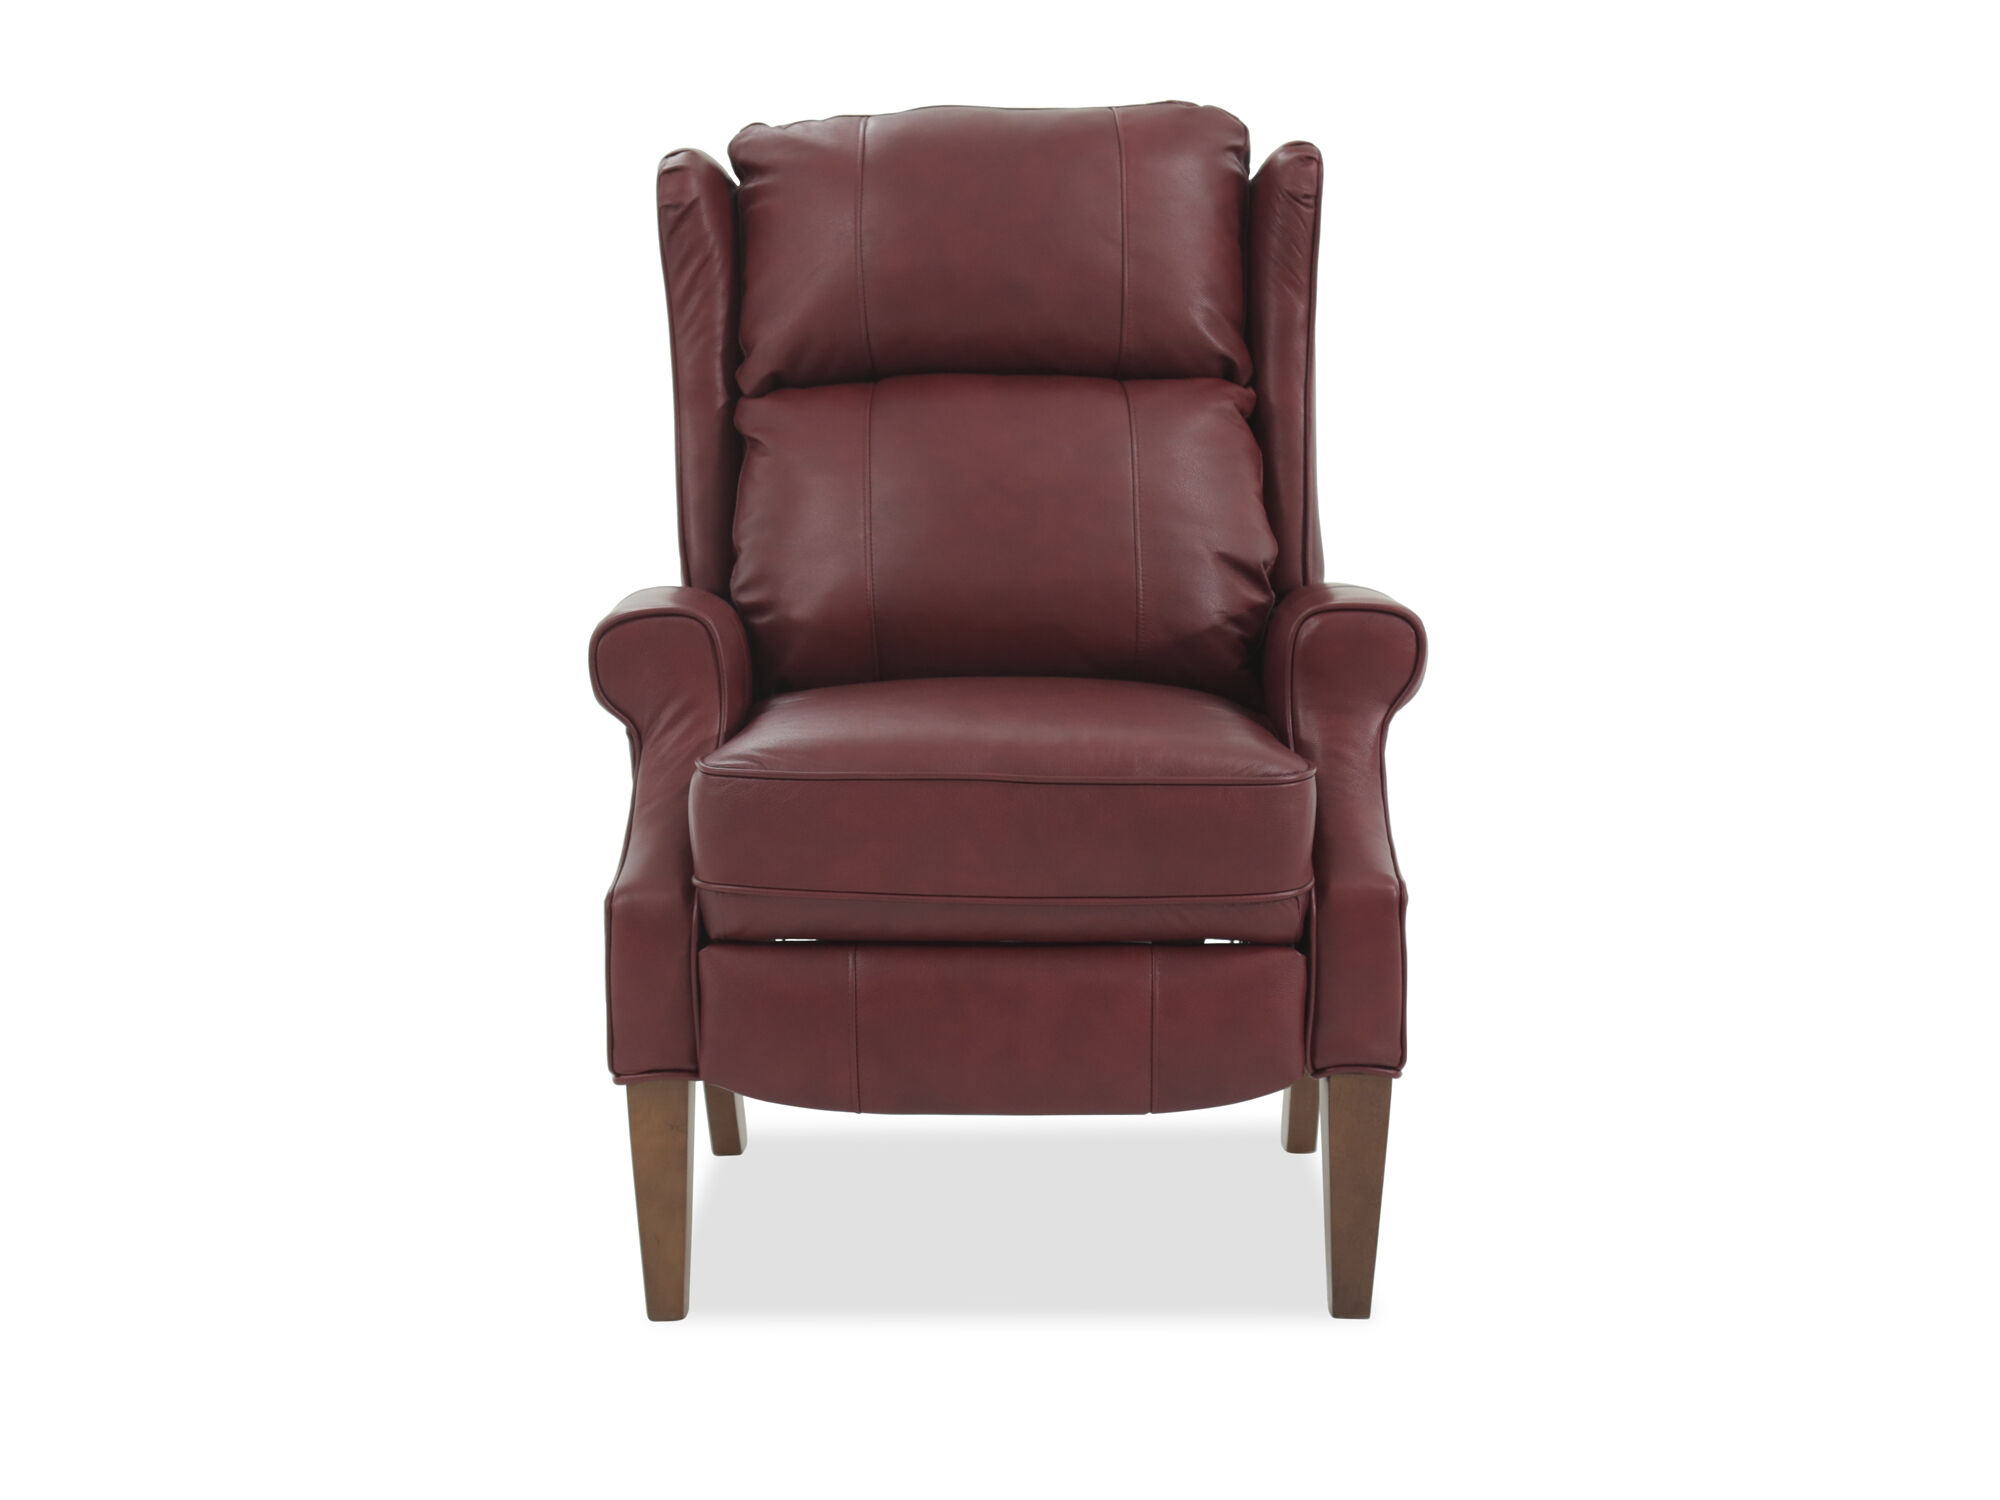 red leather wingback chair adams mfg adirondack stacking 30 5 quot pressback recliner in mathis